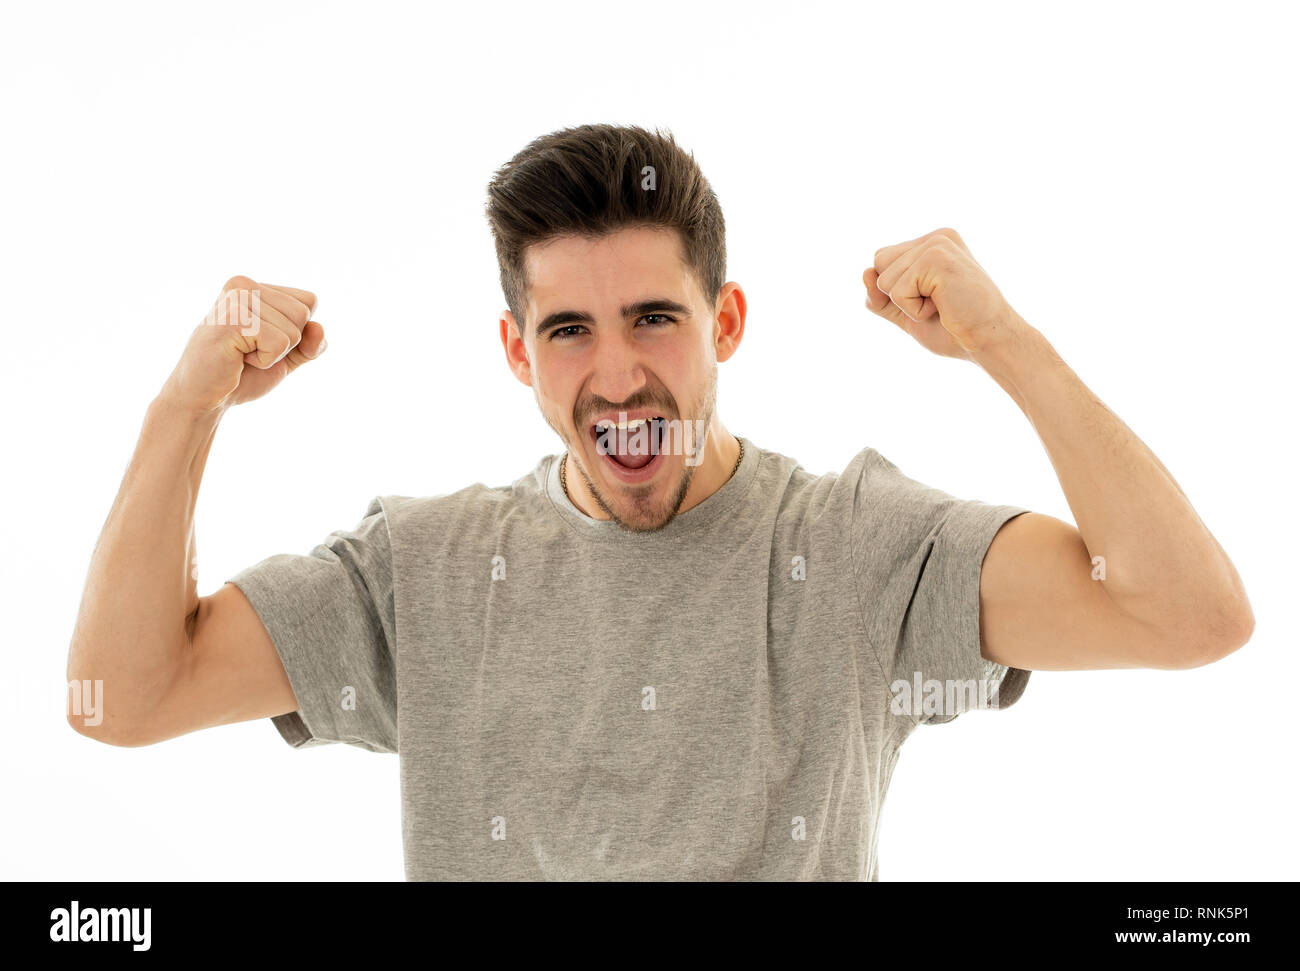 Portrait of young man celebrating achieving his goal, wining the lottery or having great success in face expression human emotions surprised and happy - Stock Image